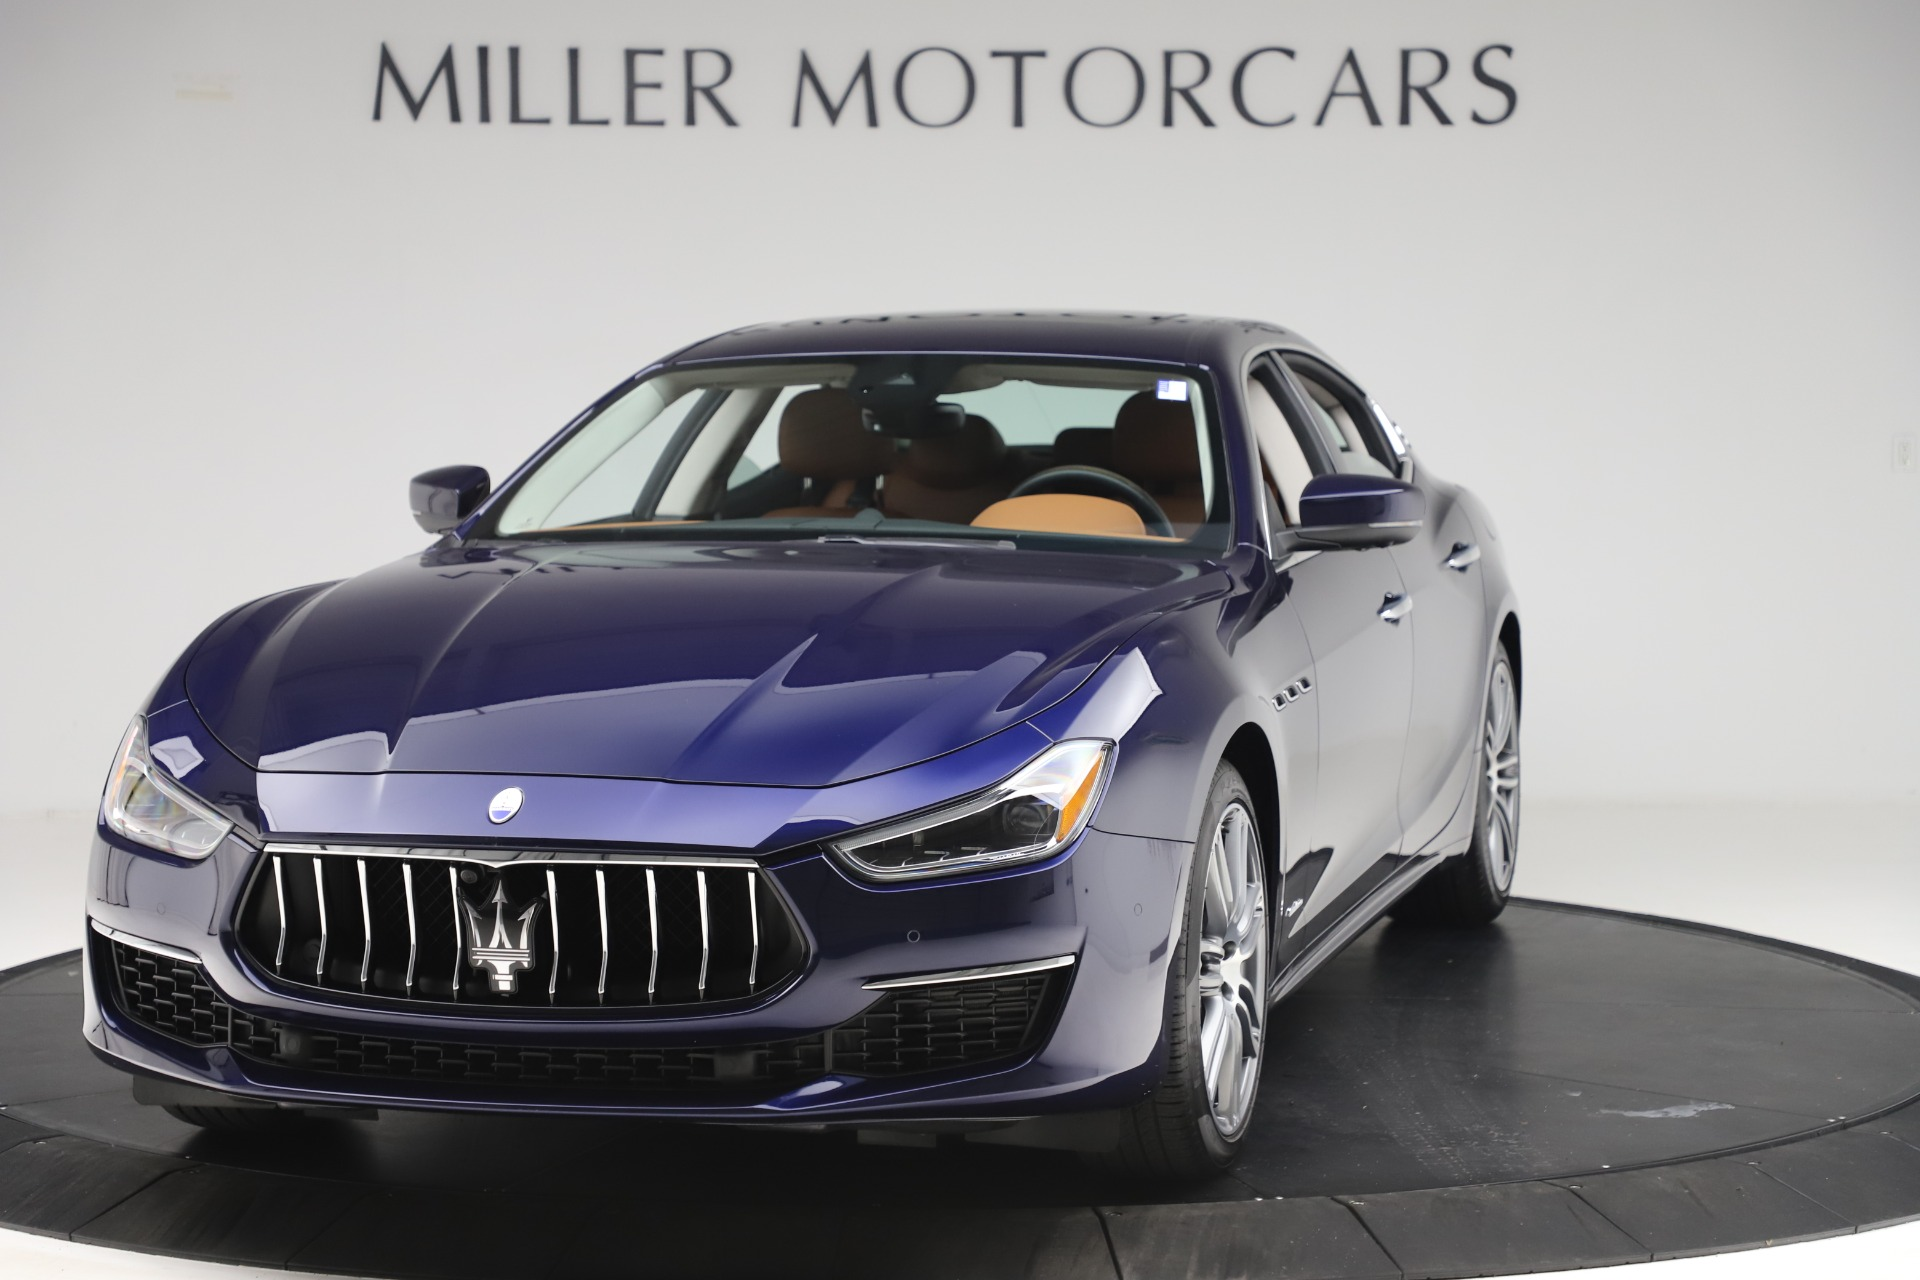 New 2020 Maserati Ghibli S Q4 GranLusso for sale $89,535 at Bugatti of Greenwich in Greenwich CT 06830 1